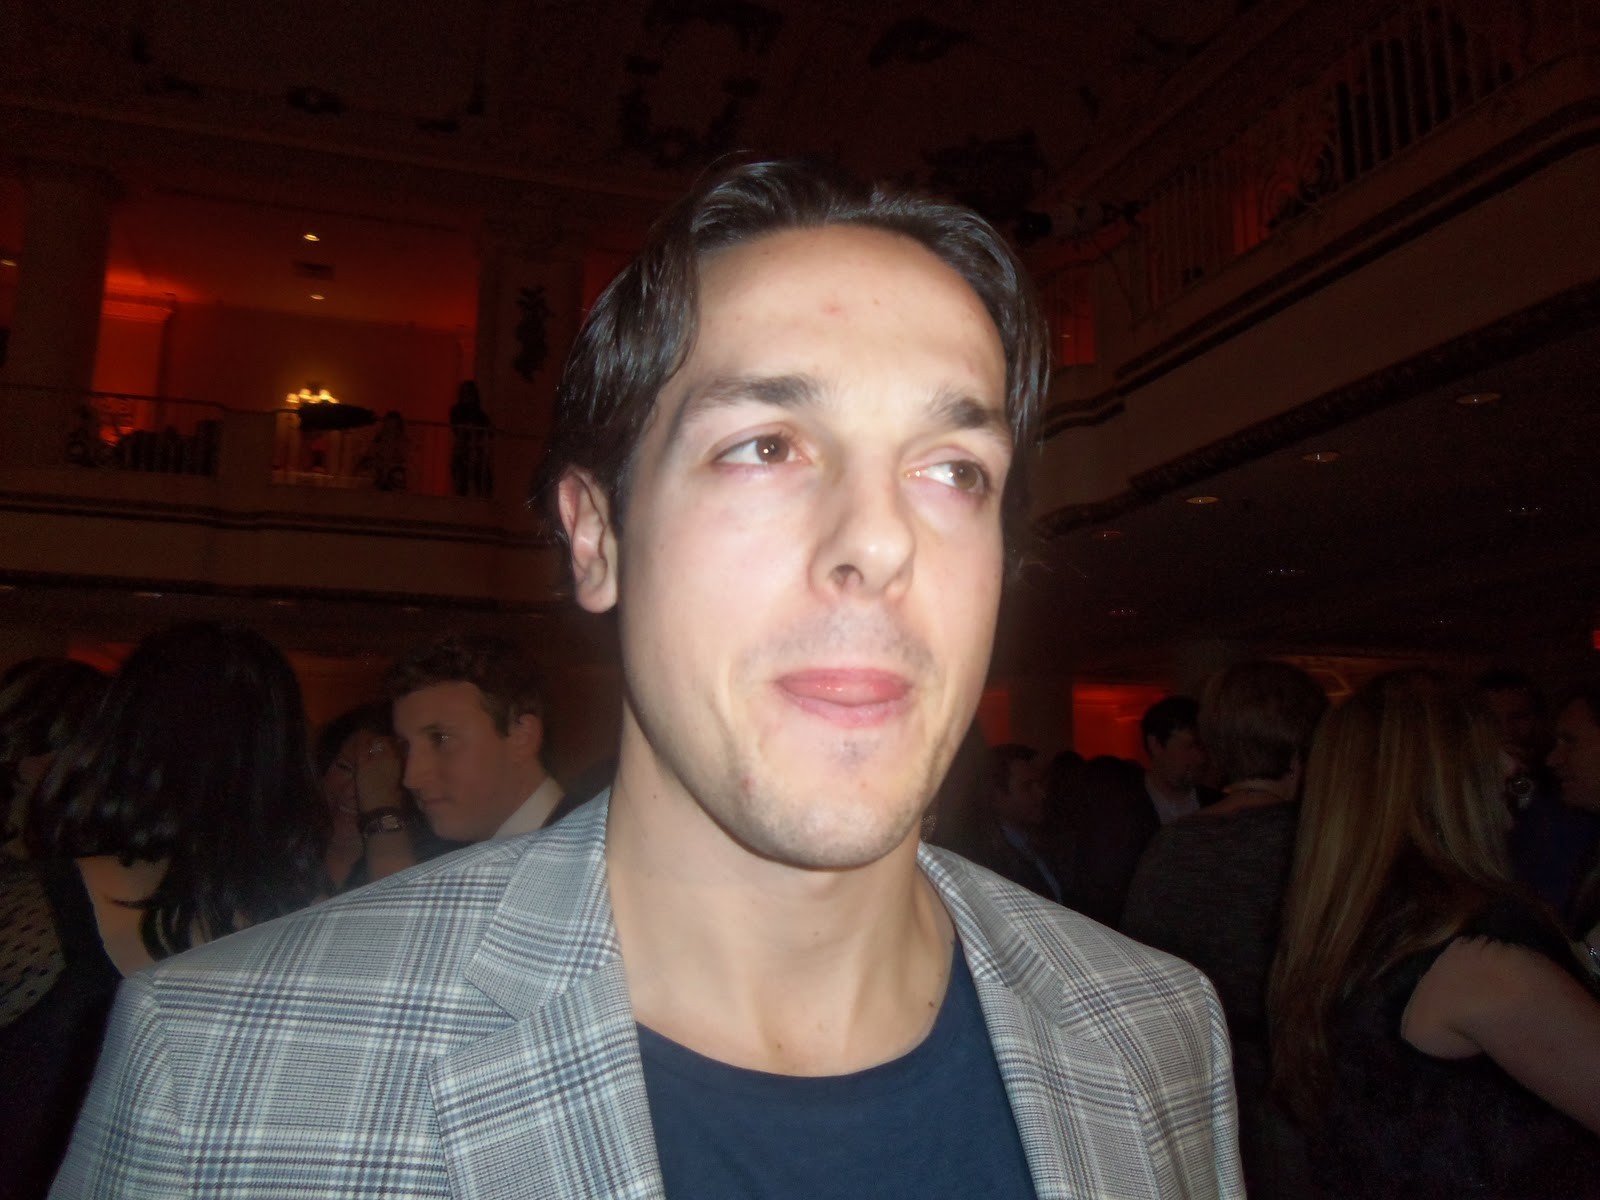 Briere Girlfriend http://nakedphiladelphian.blogspot.com/2012/01/flyers-and-their-beautiful-wives-at.html